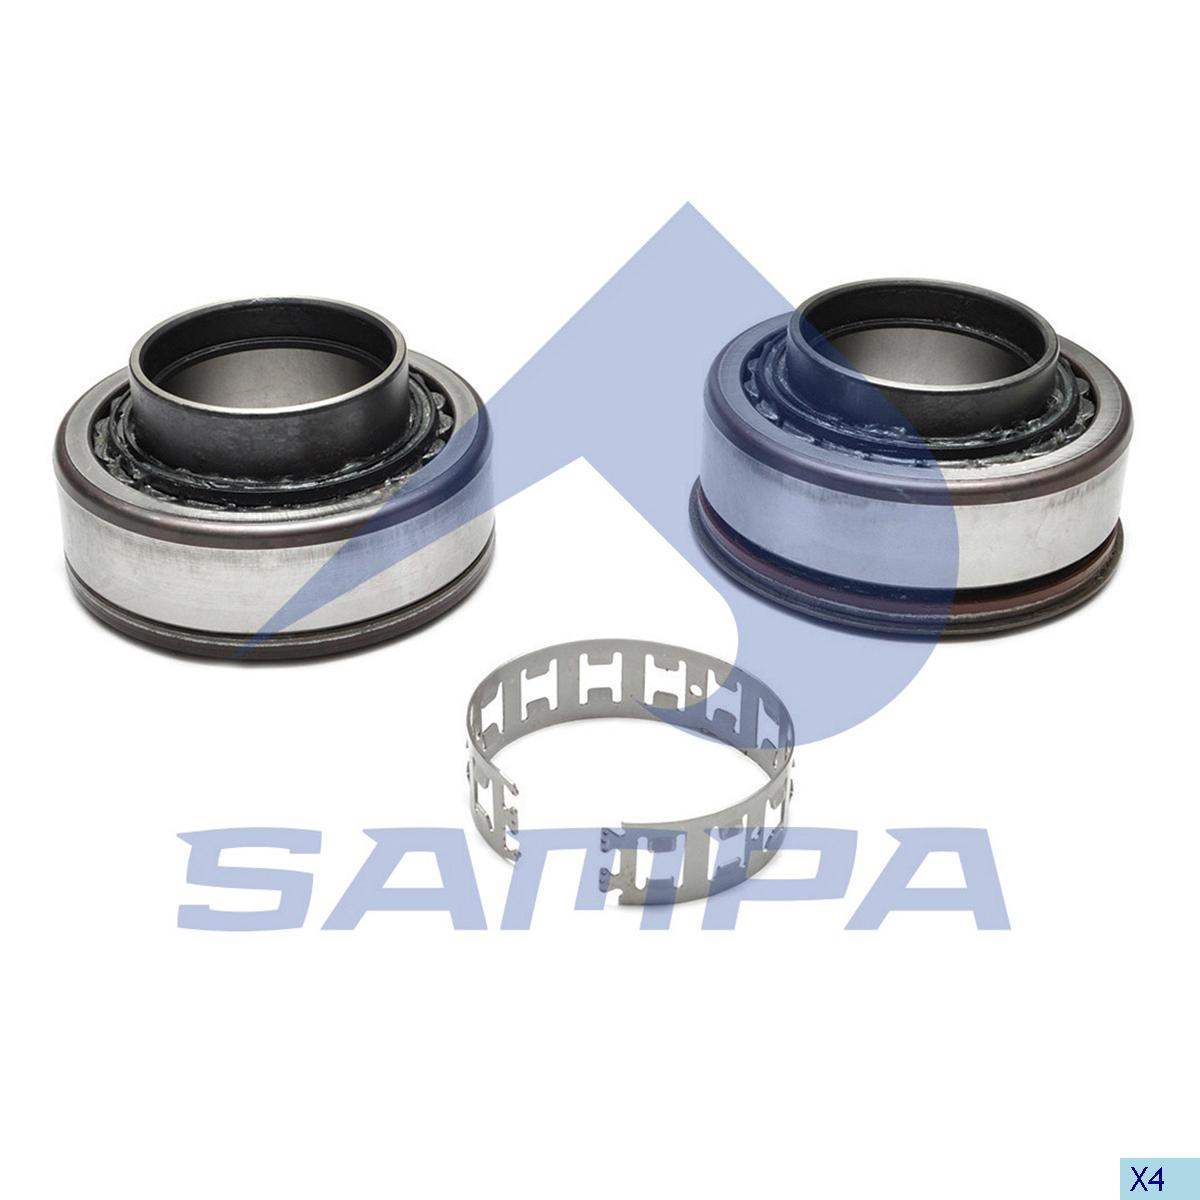 Bearing, Wheel Hub, Volvo, Power Unit